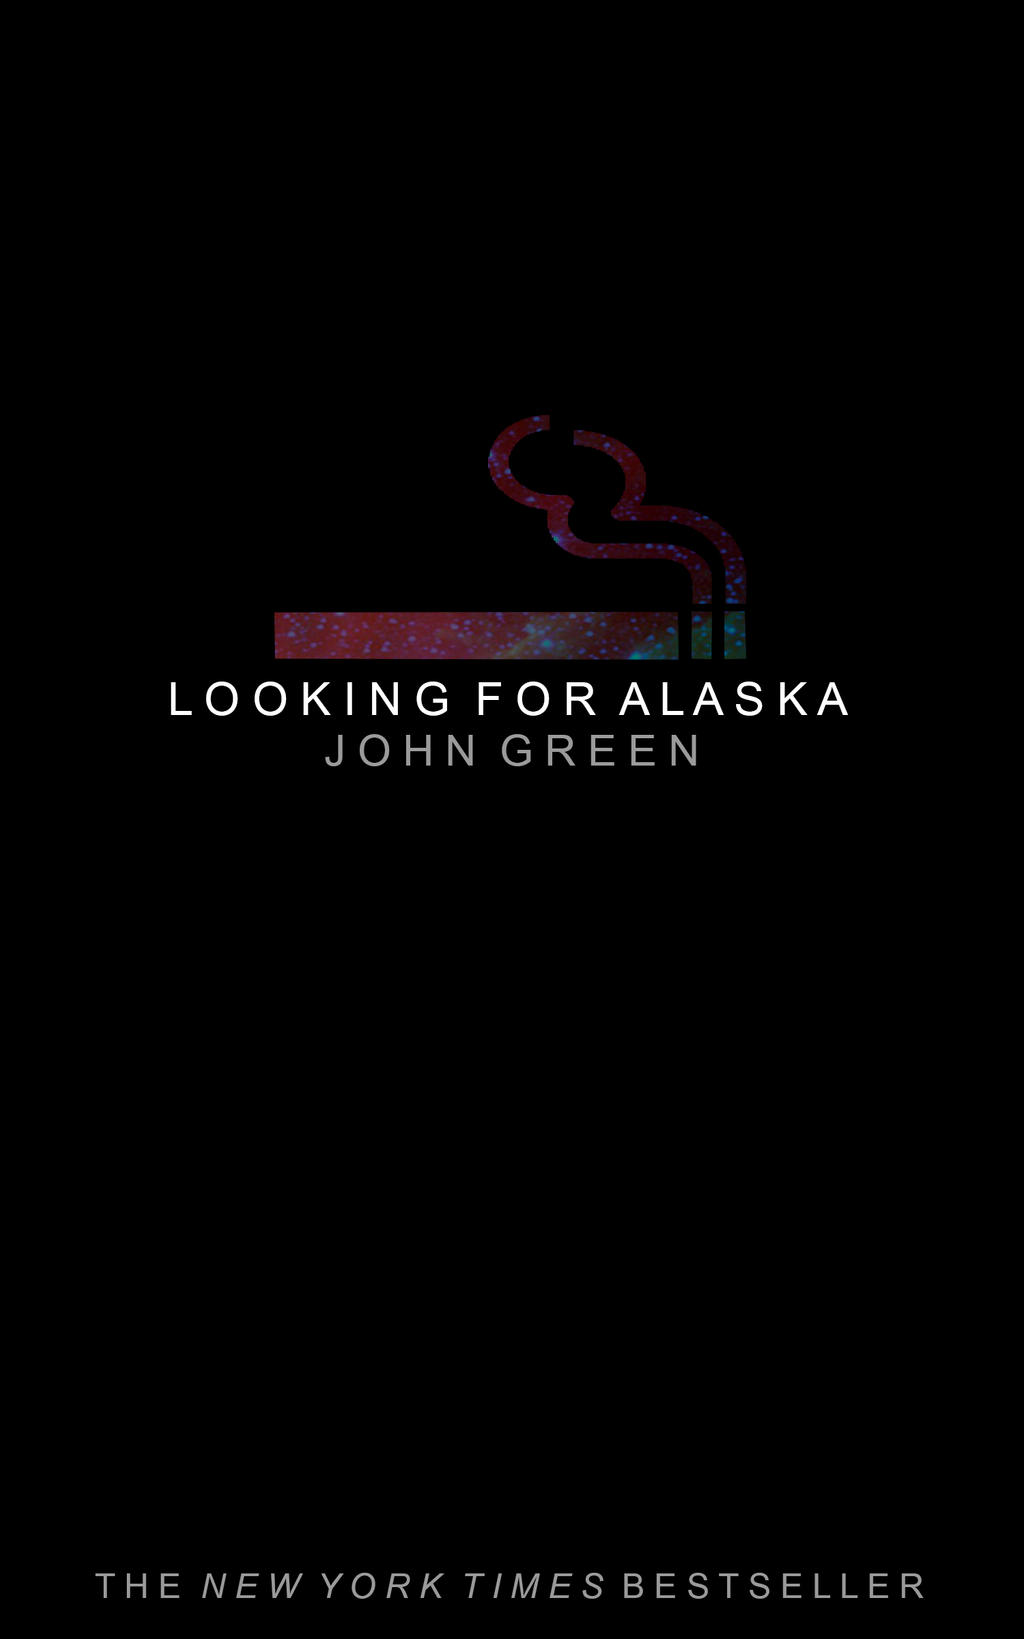 Looking For Alaska Quotes With Page Numbers Love Quotes Looking For Alaska Say People Love Quotes Looking For